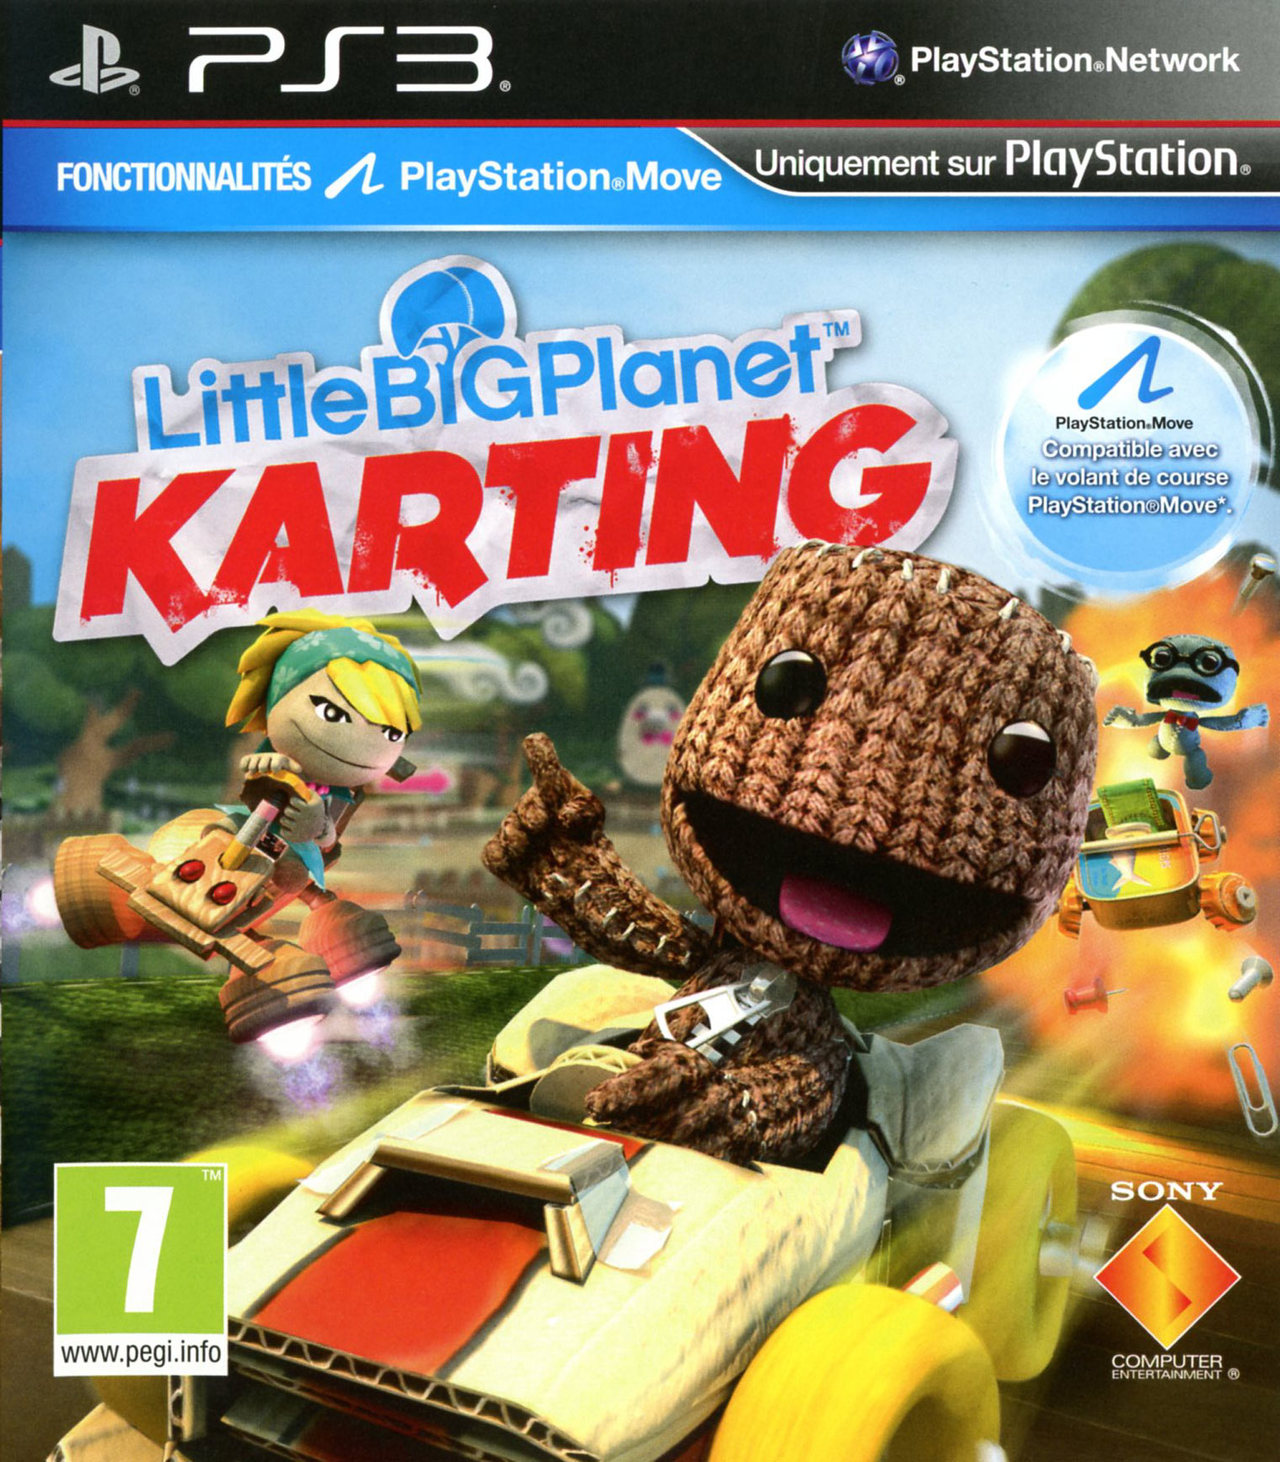 littlebigplanet karting sur playstation 3. Black Bedroom Furniture Sets. Home Design Ideas